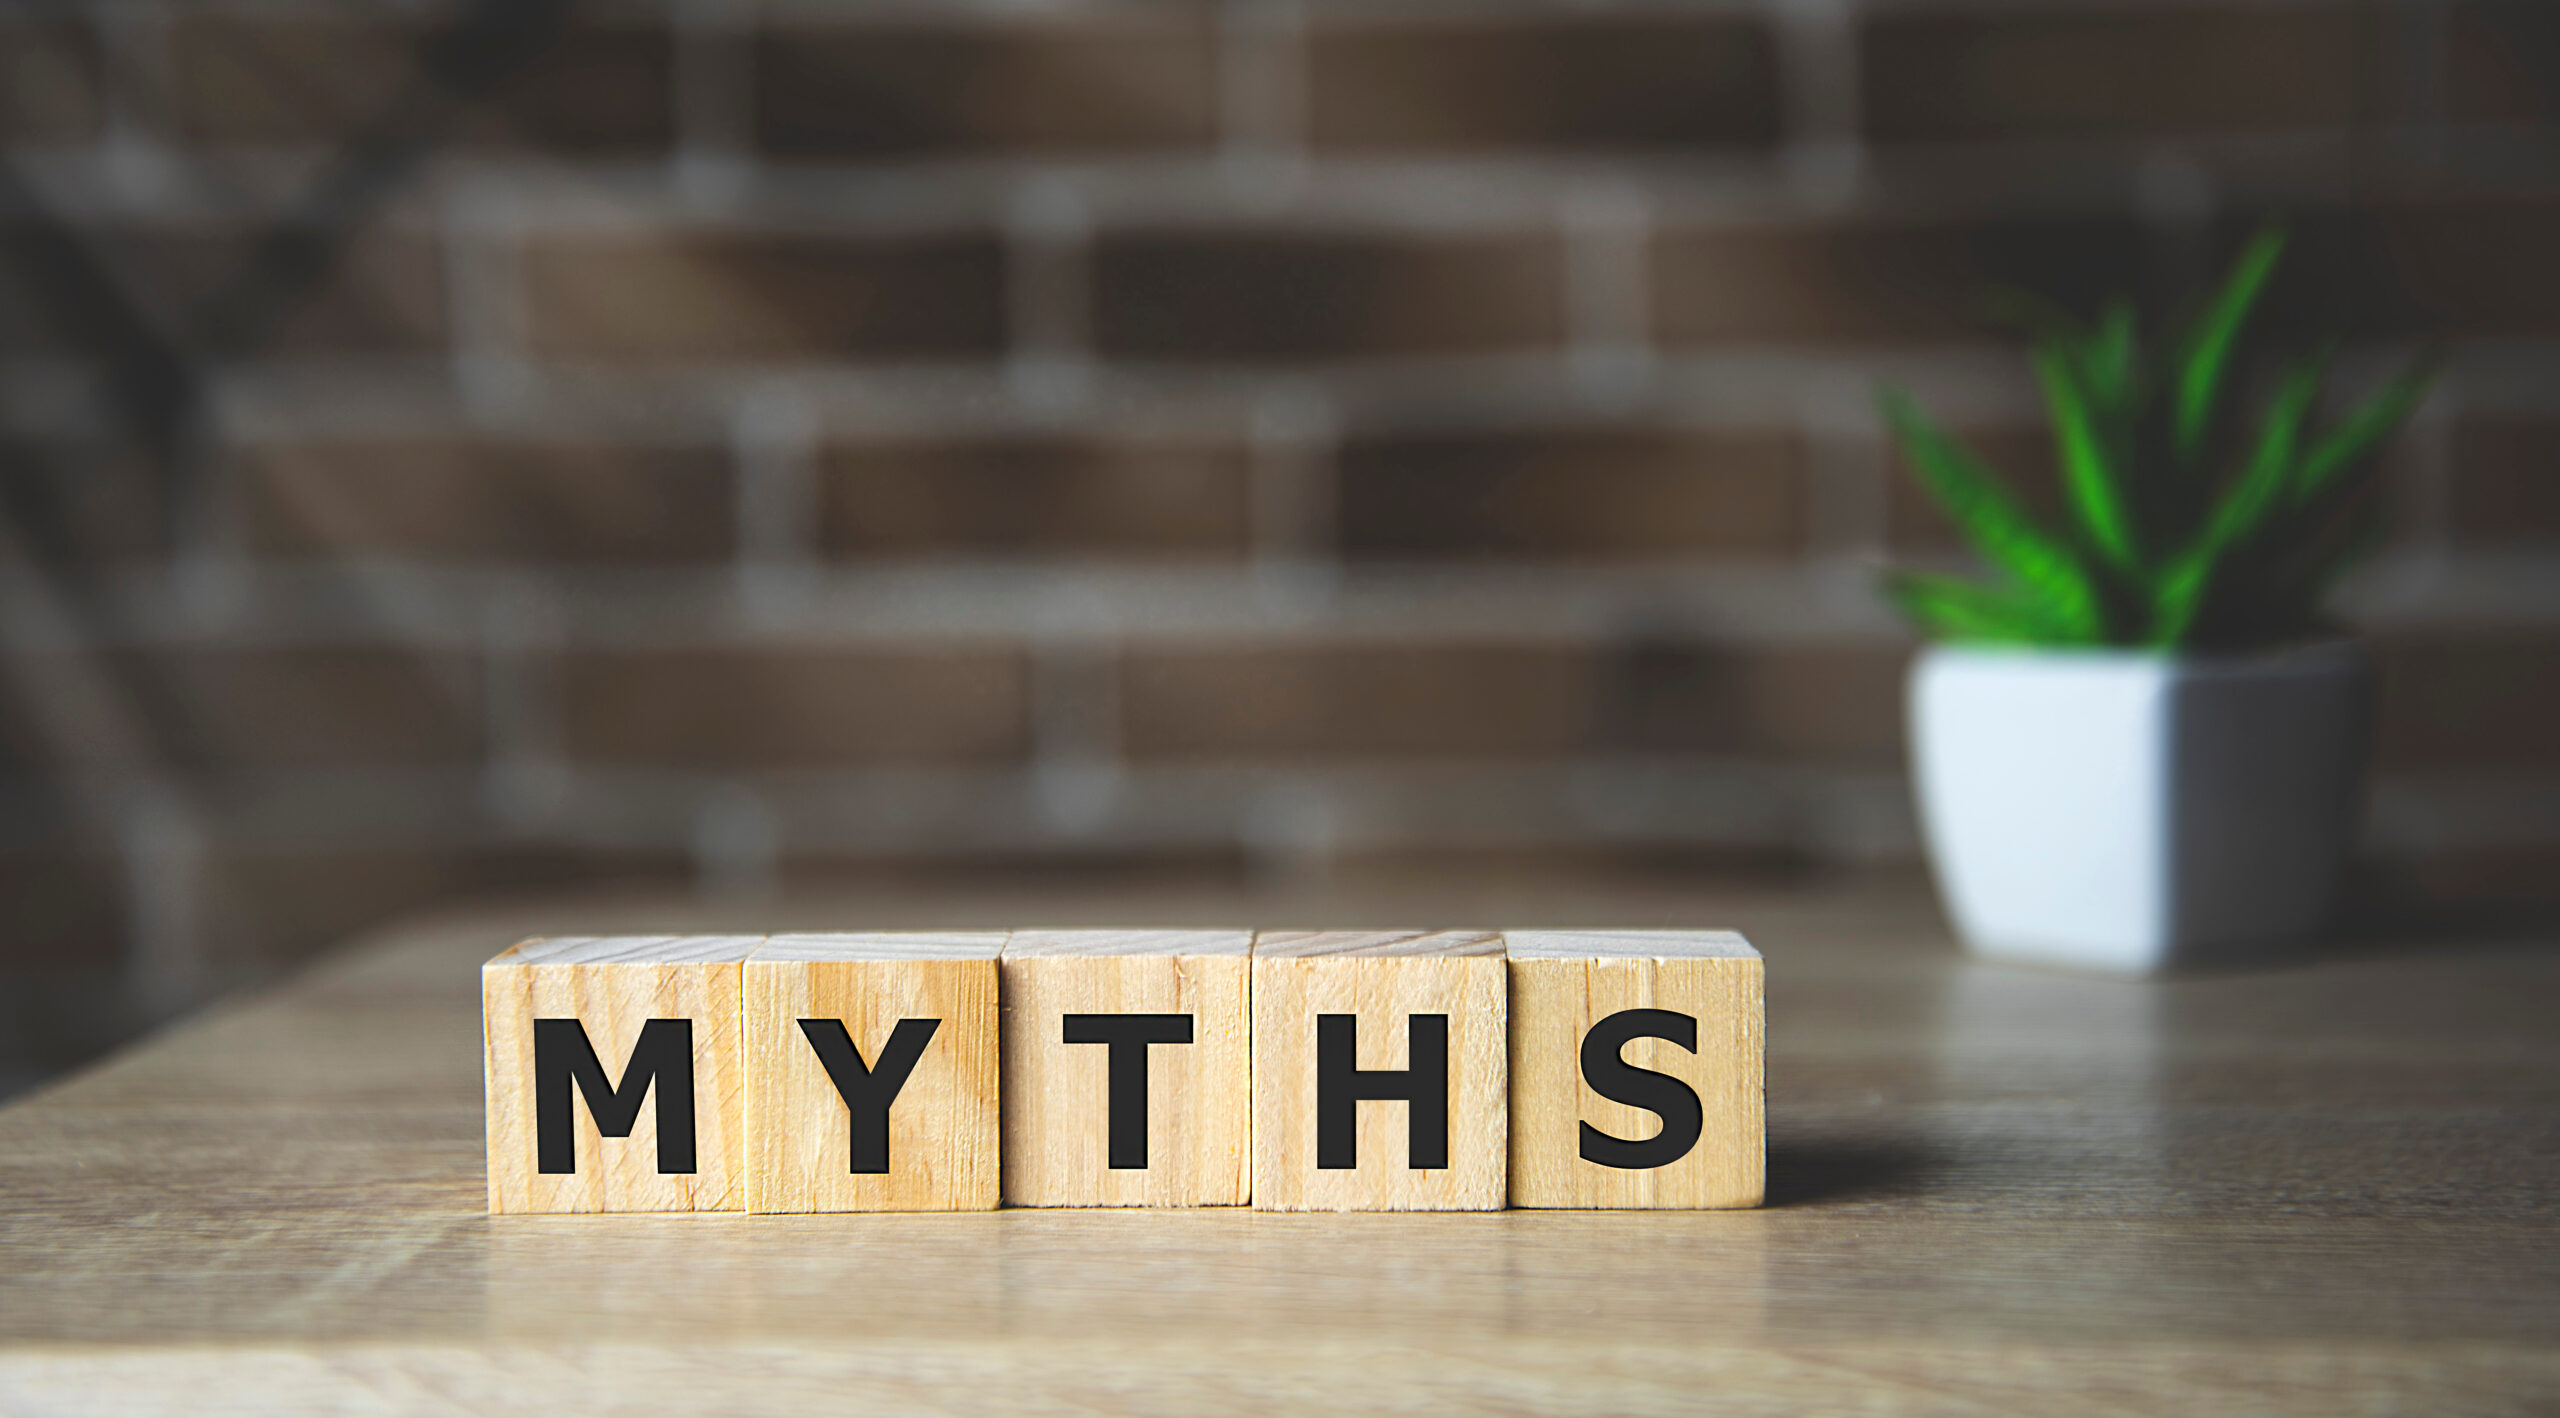 If you are going to learn Arabic, you need to know about Arabic myths. Everyday Arabic will no longer seem the same with these debunked myths. Click here.